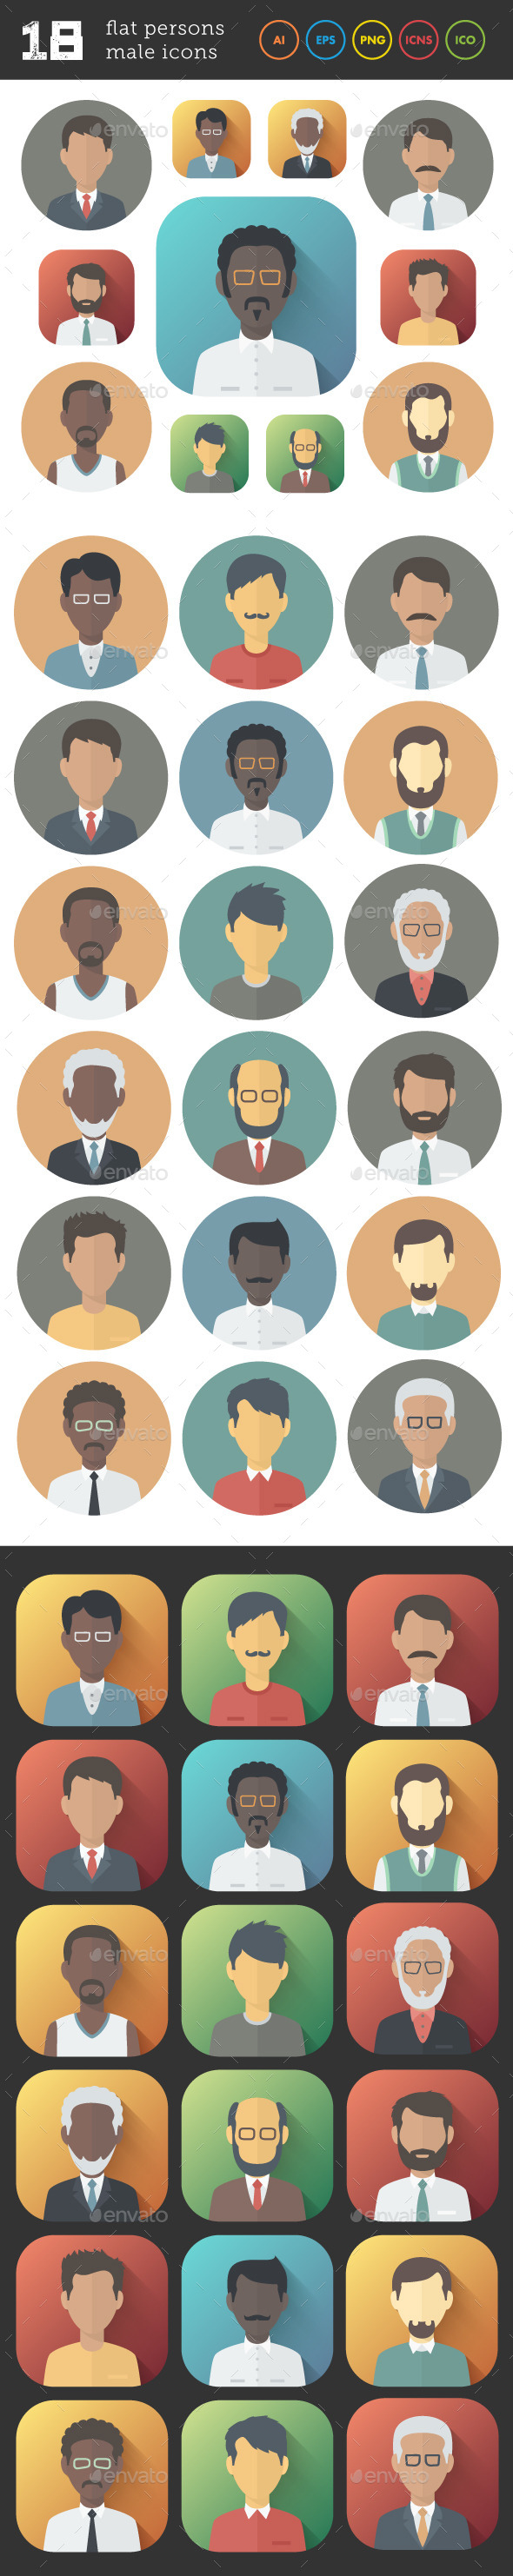 GraphicRiver Flat Icons Set of Male Persons 9333109